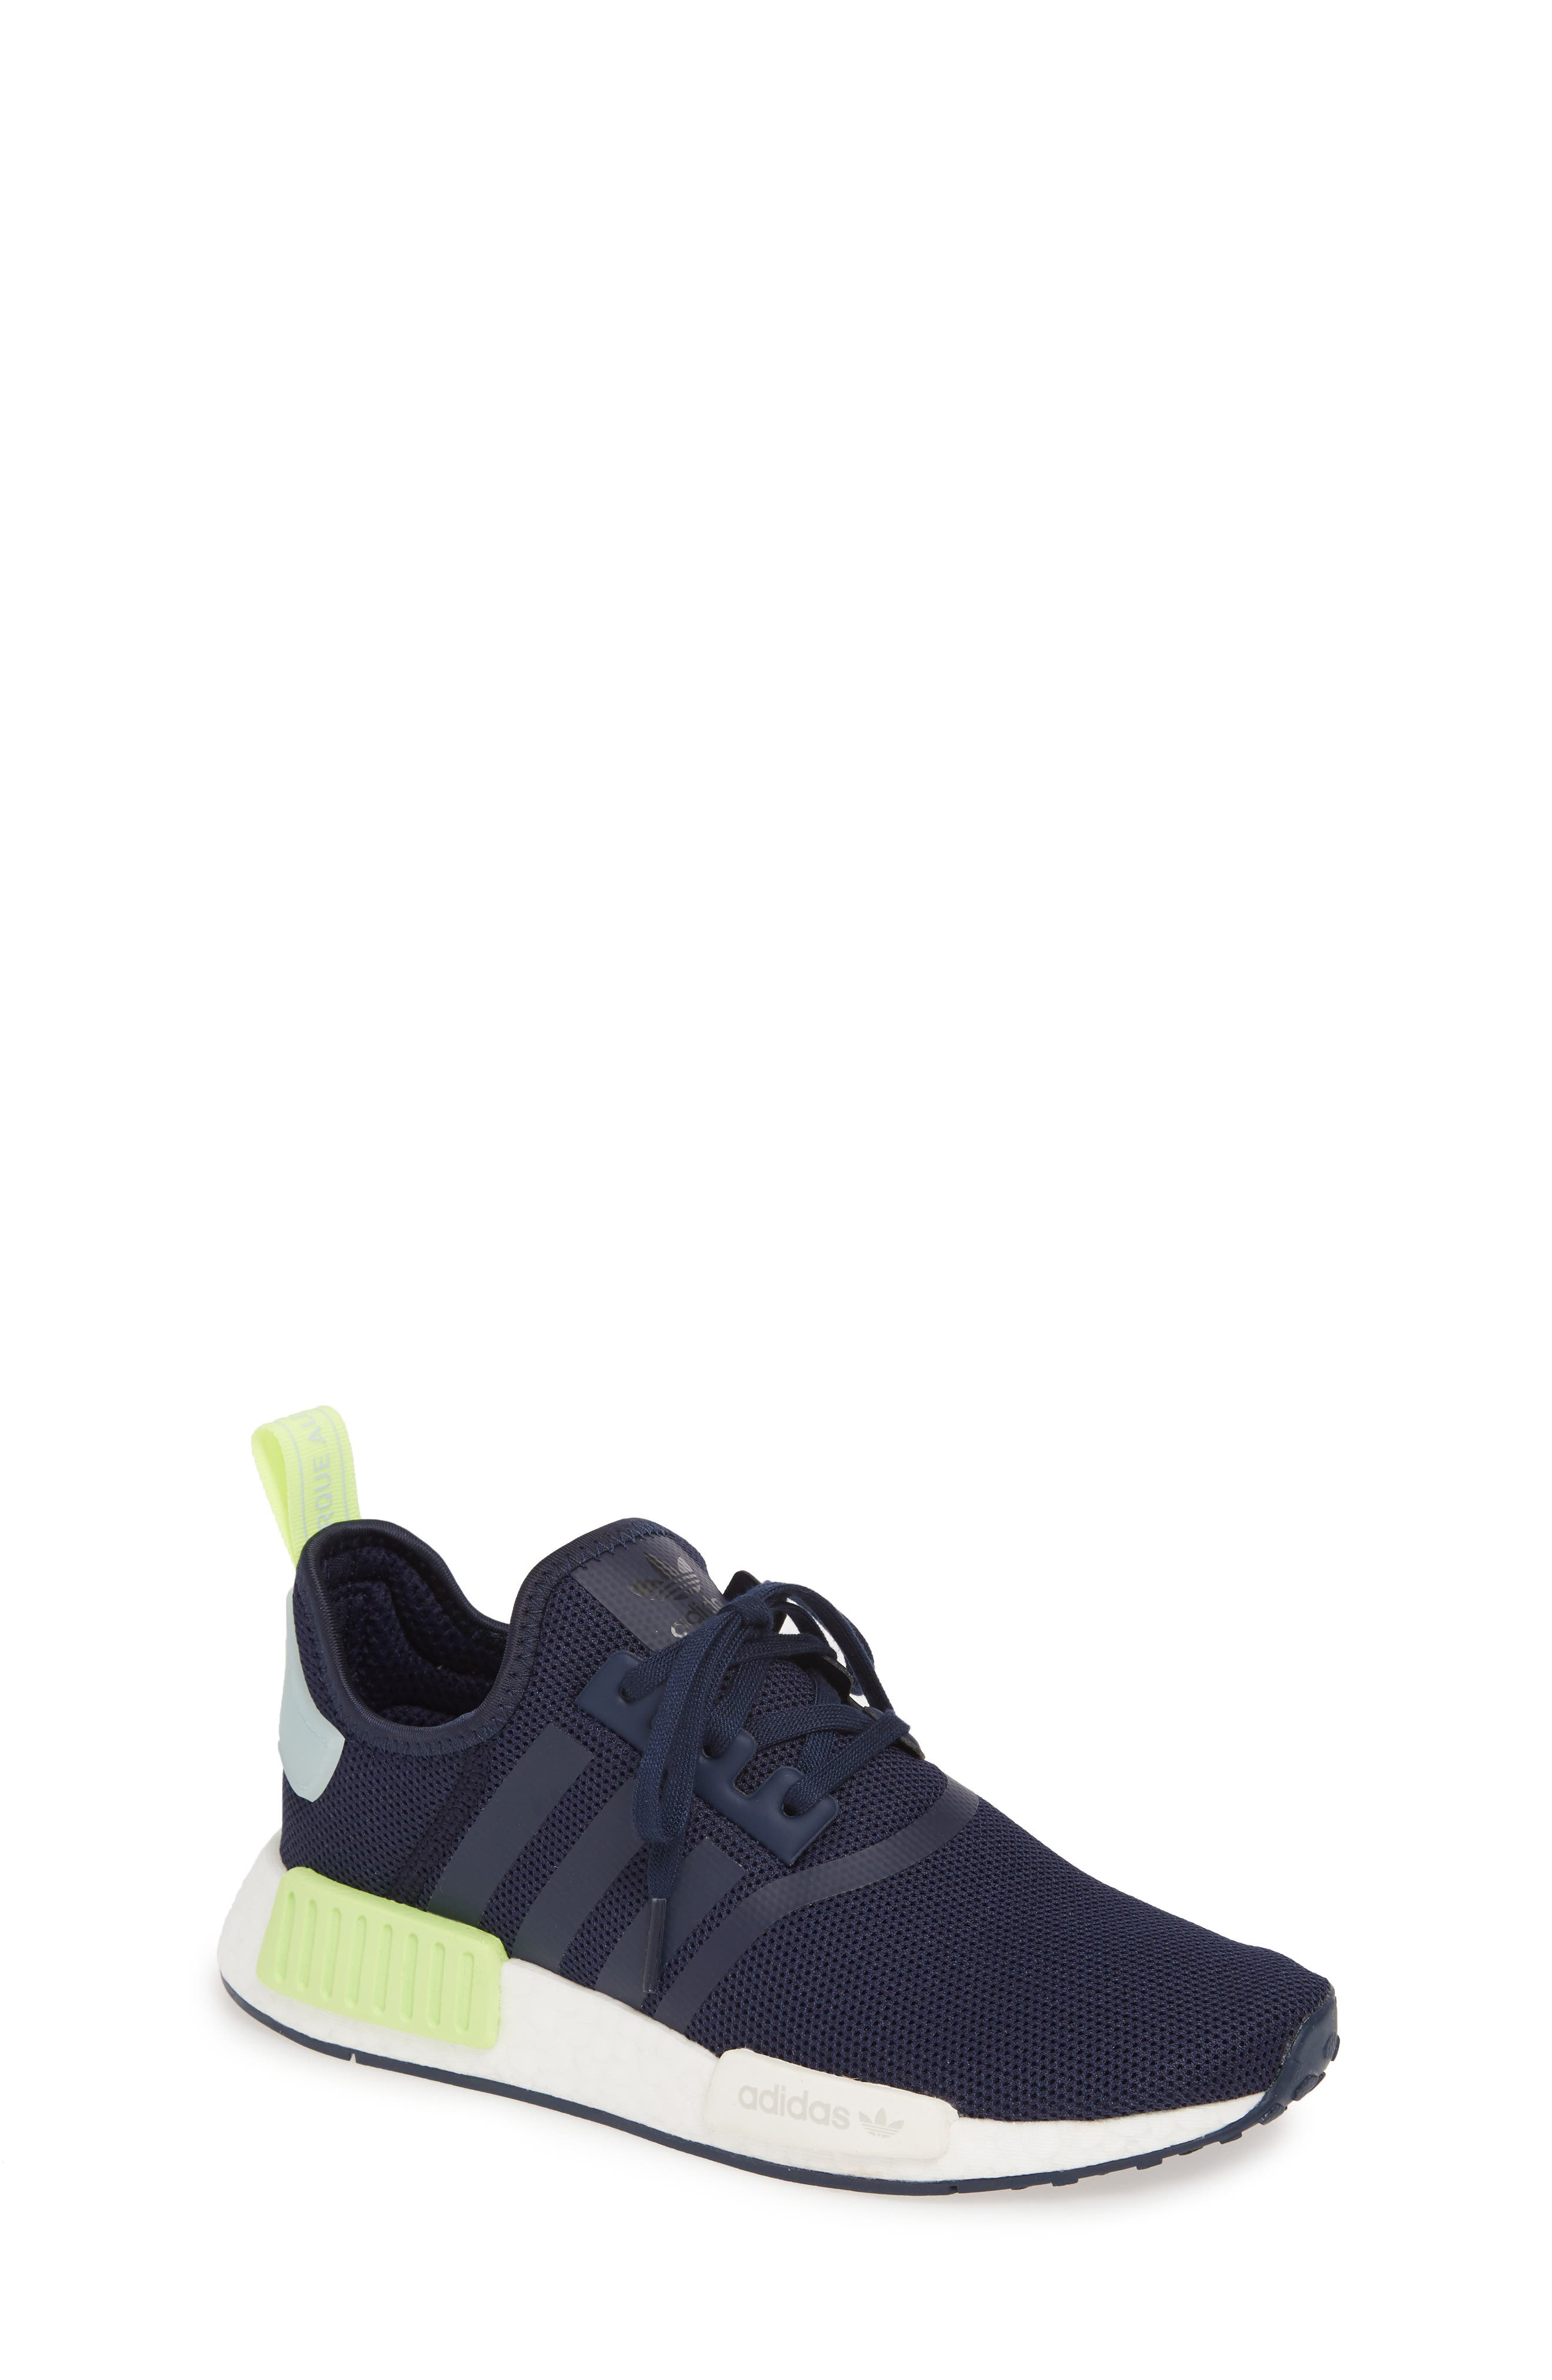 new product 14948 002a5 Girls' Adidas Shoes | Nordstrom